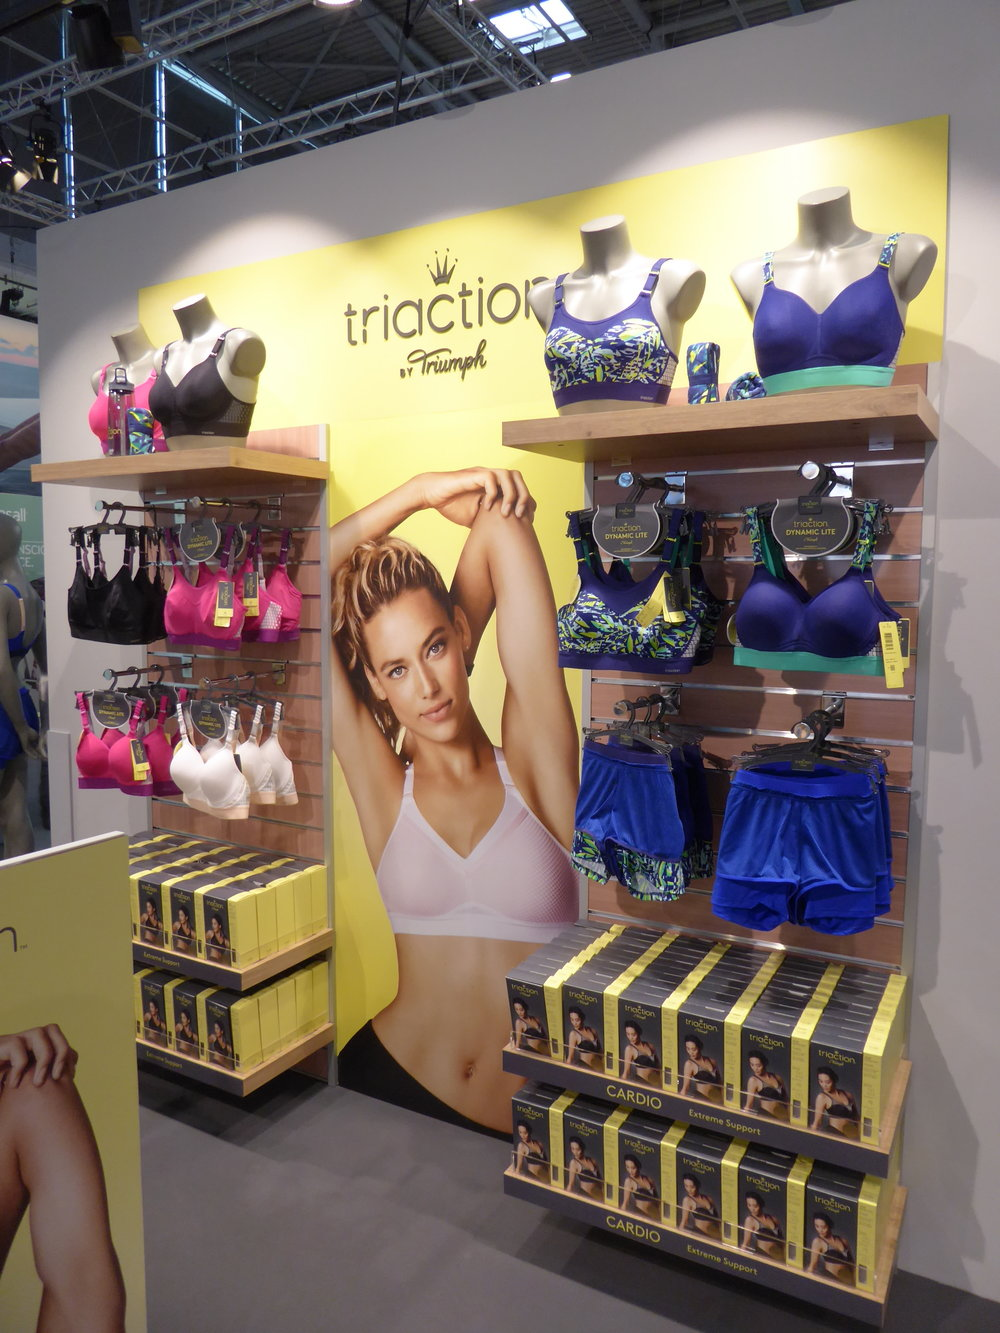 POS fixture graphics and product tags for Triaction by Triumph Lingerie at ISPO